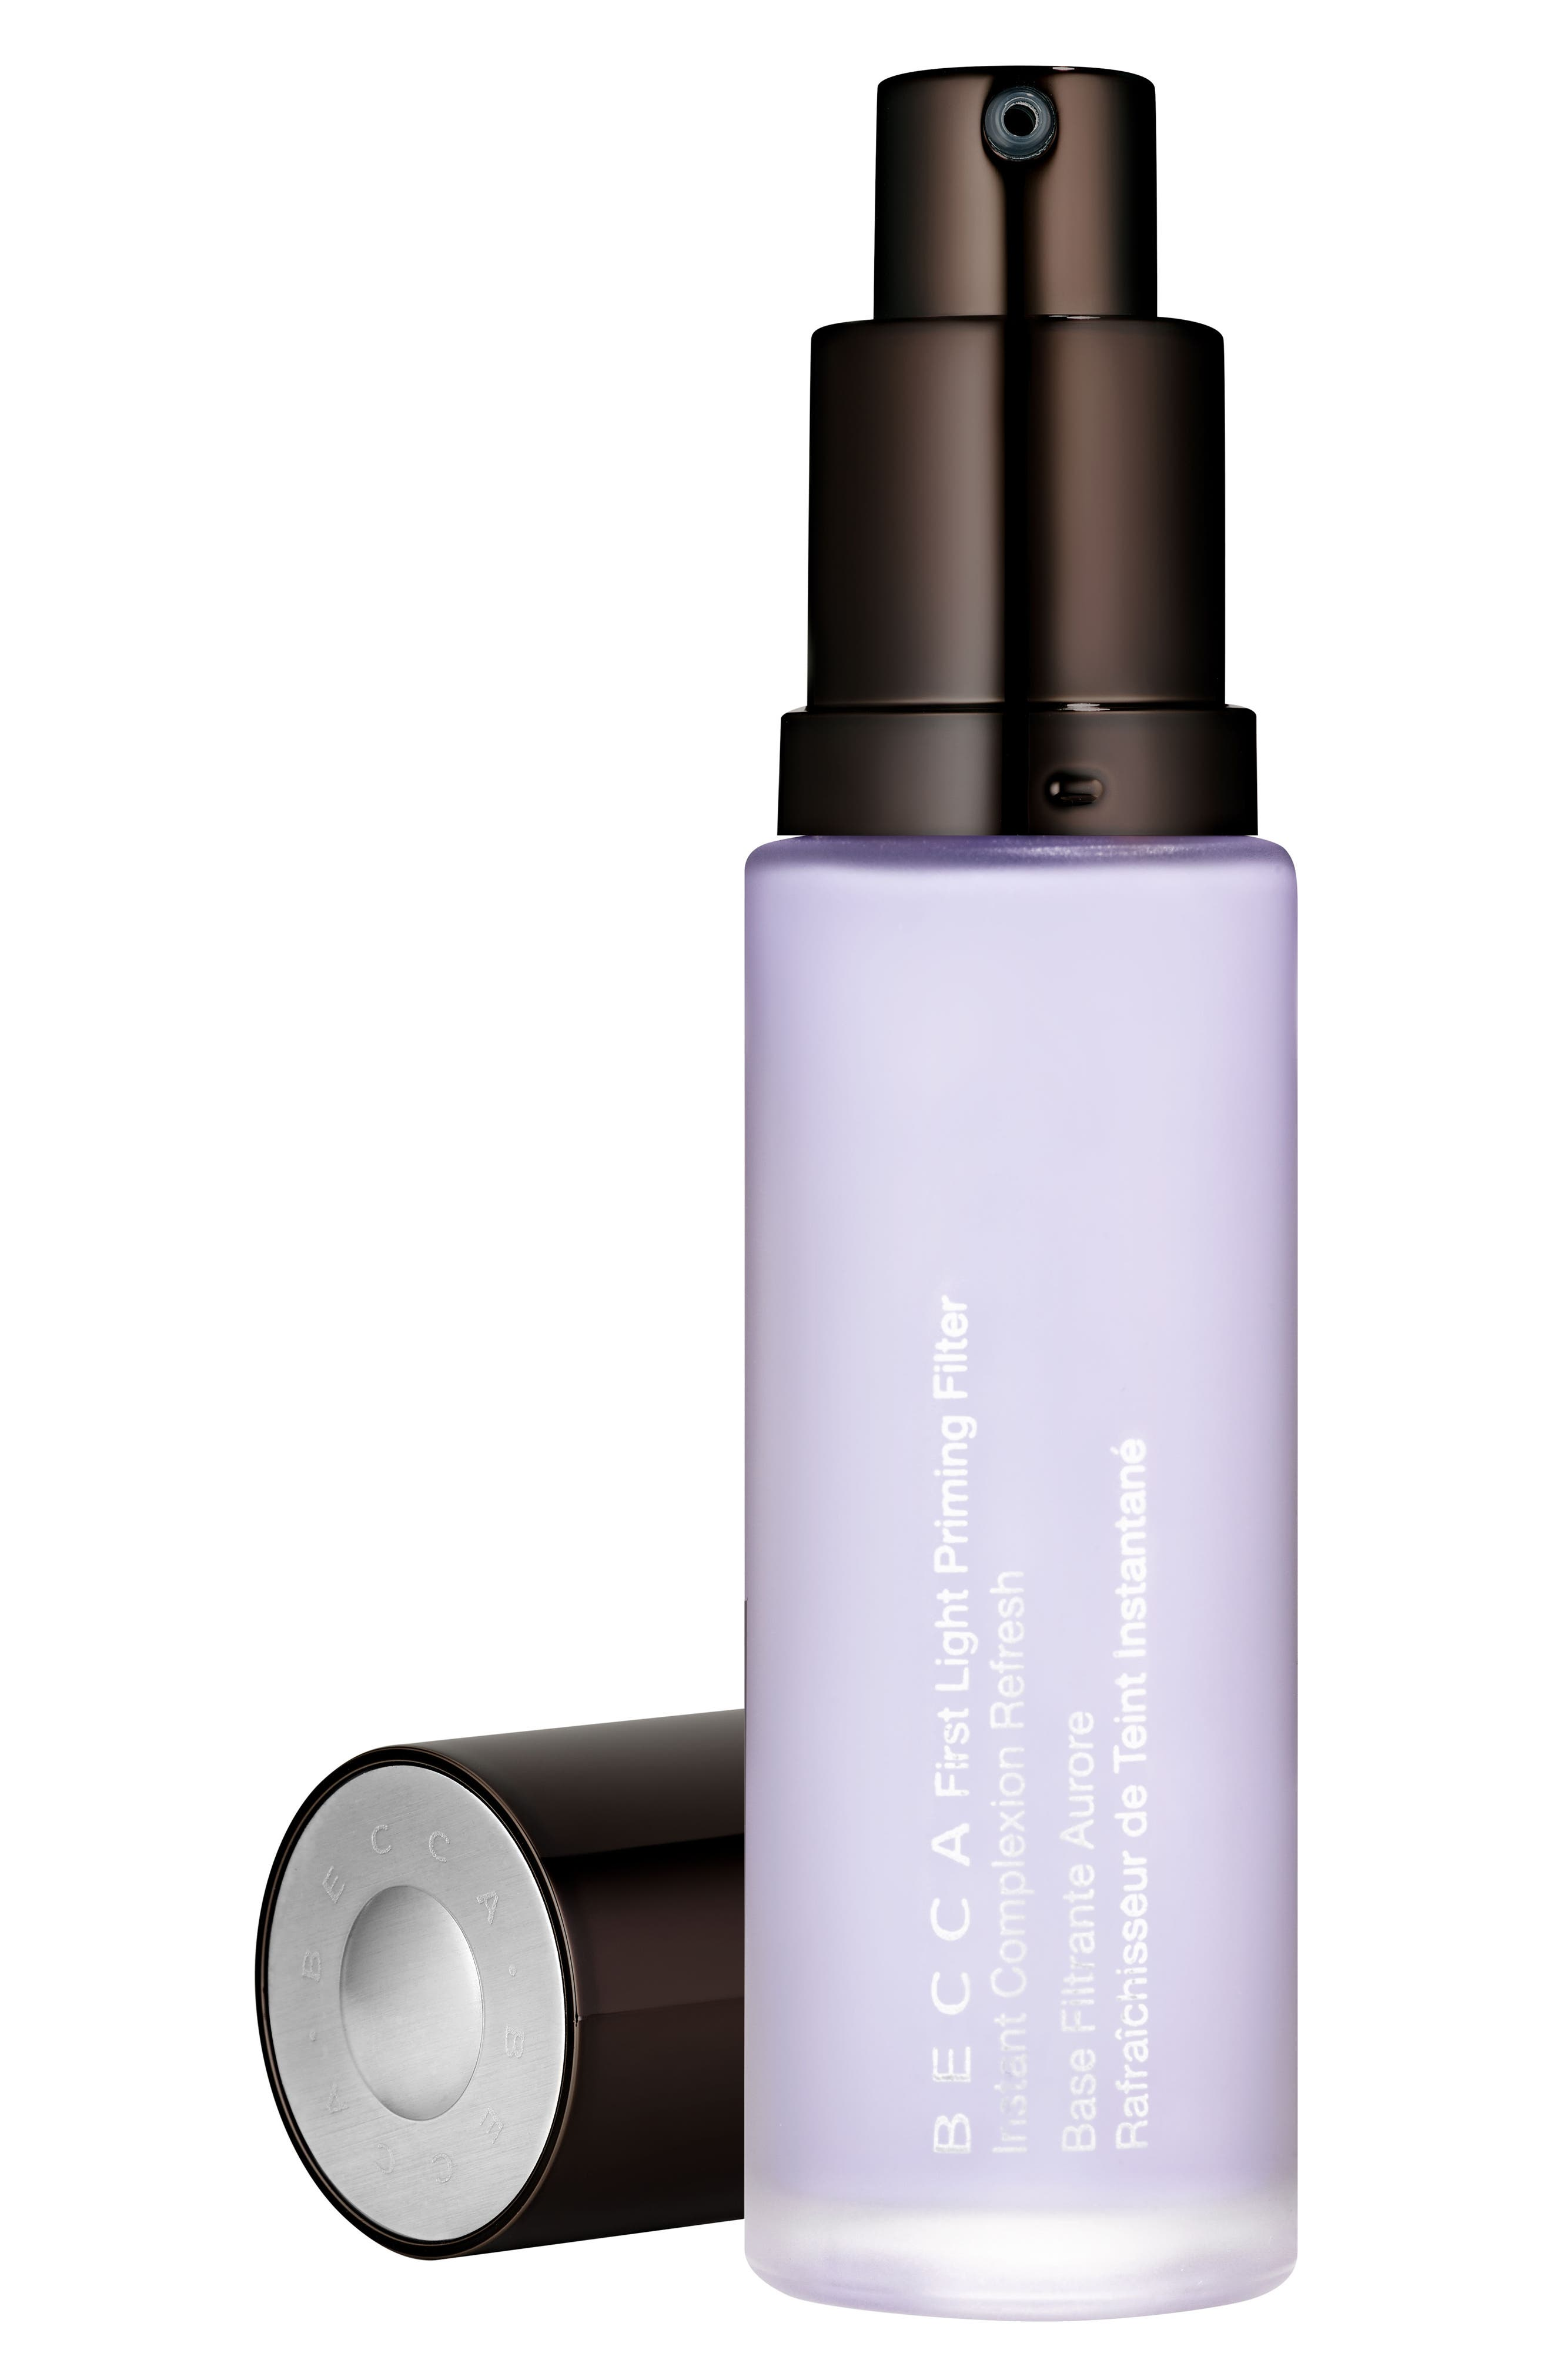 BECCA First Light Priming Filter Instant Complexion Refresh,                             Main thumbnail 1, color,                             No Color